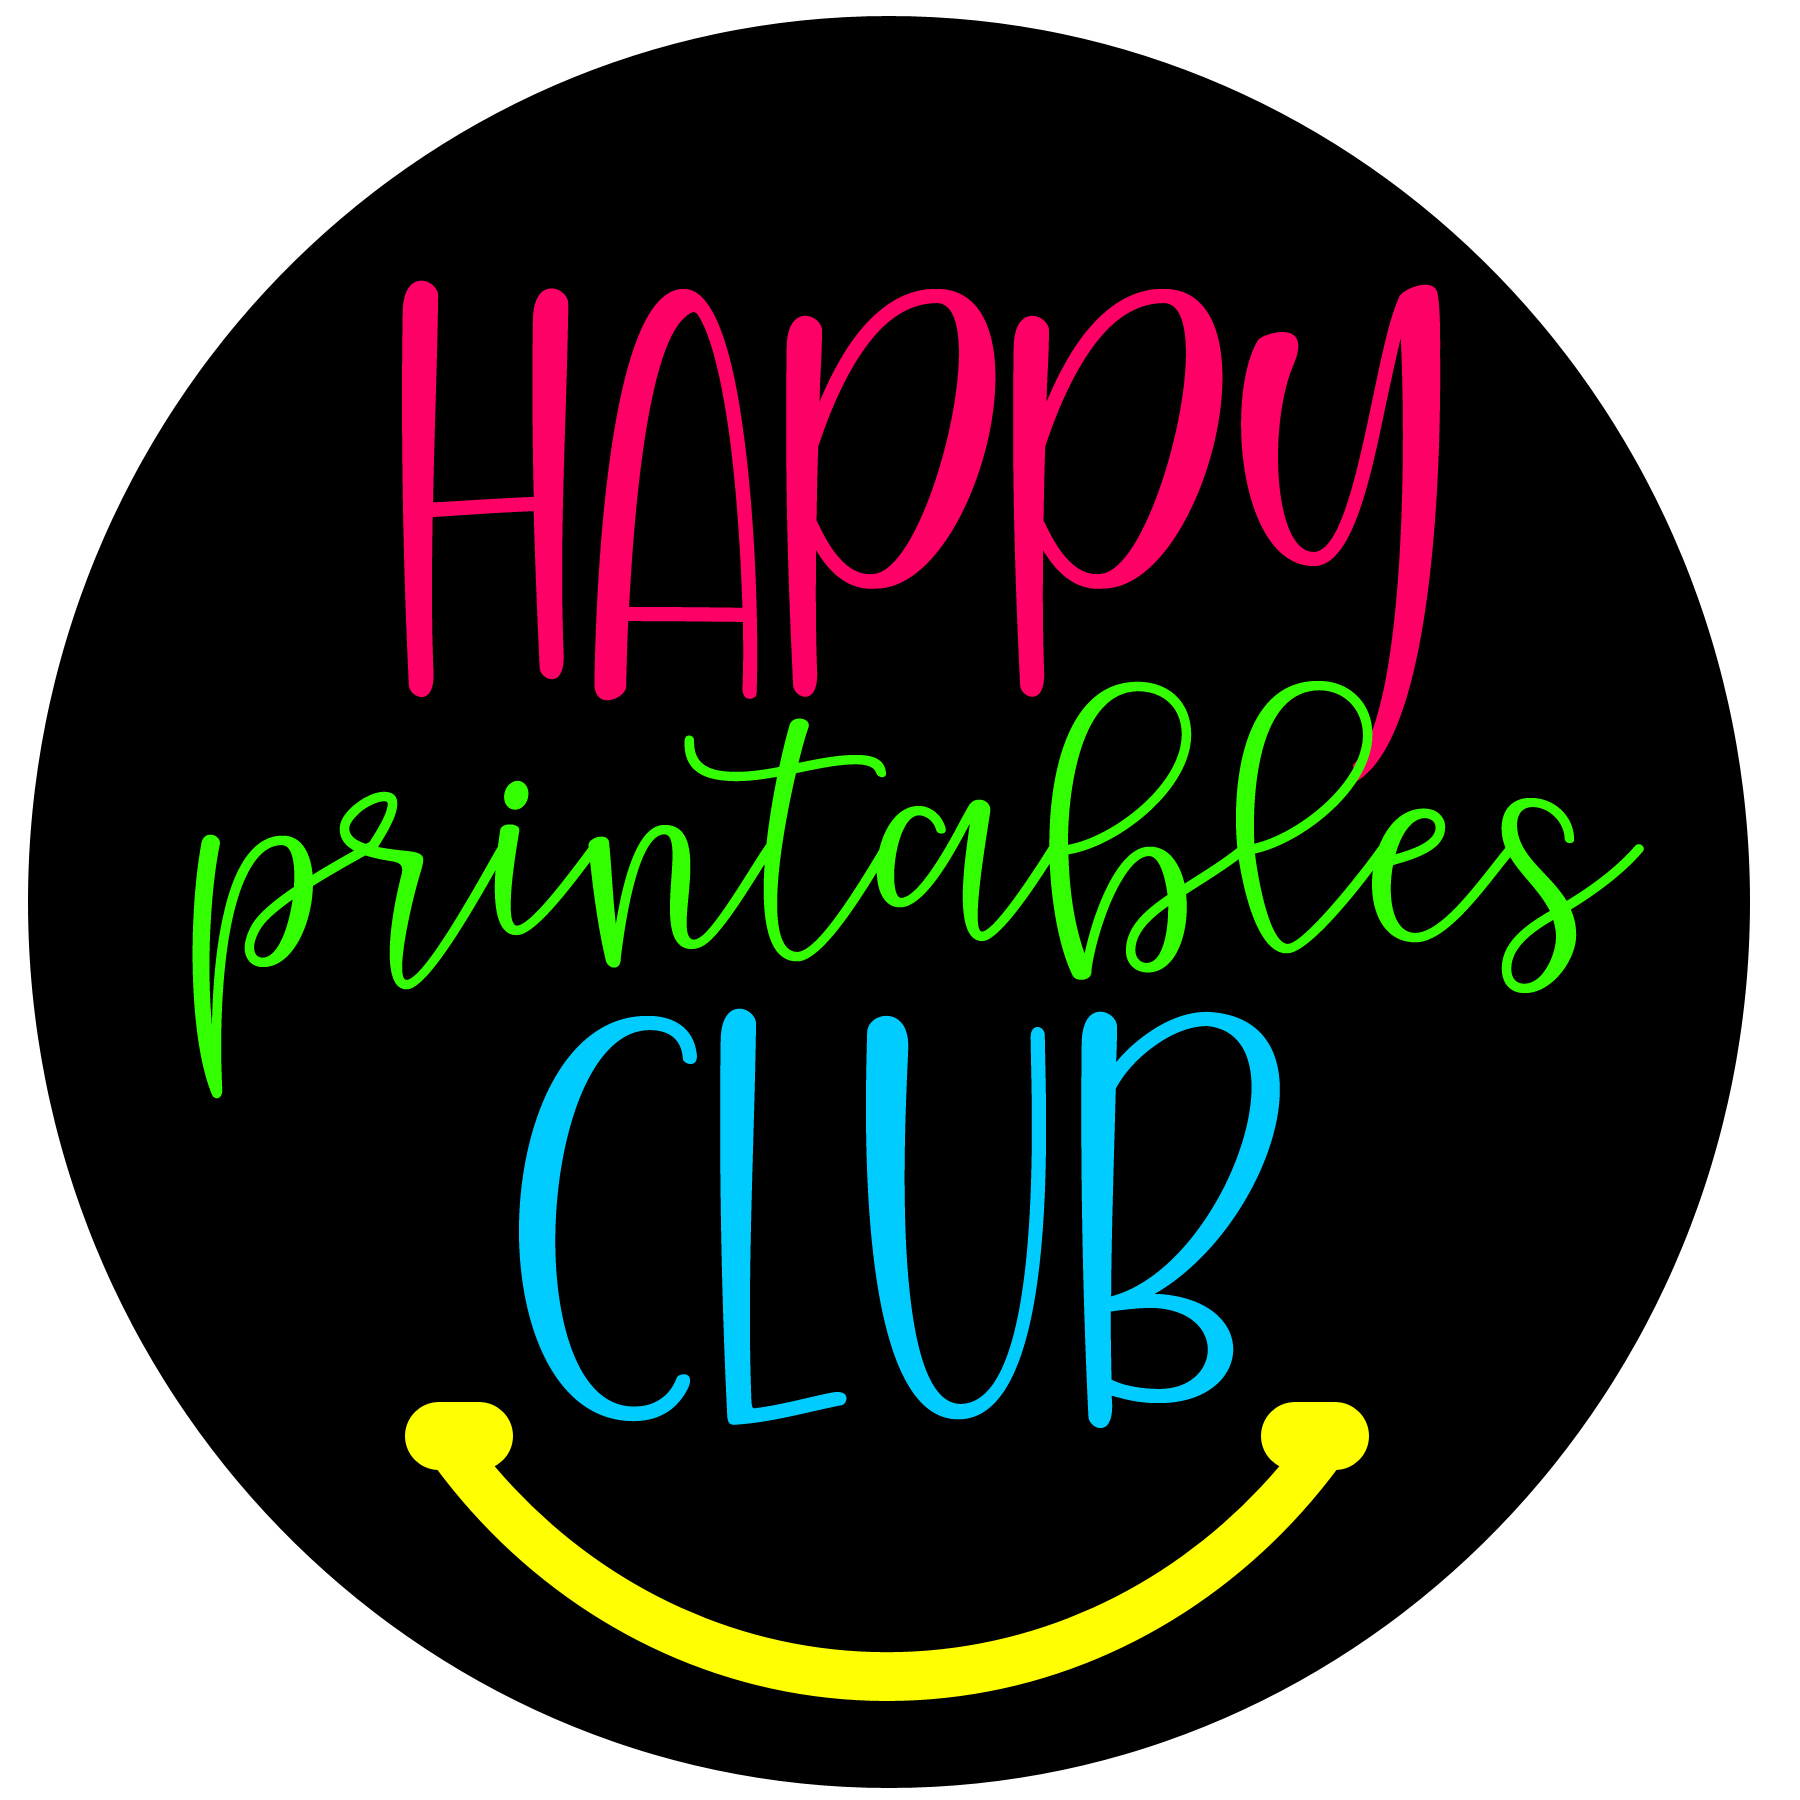 Happy Printables Club's profile picture